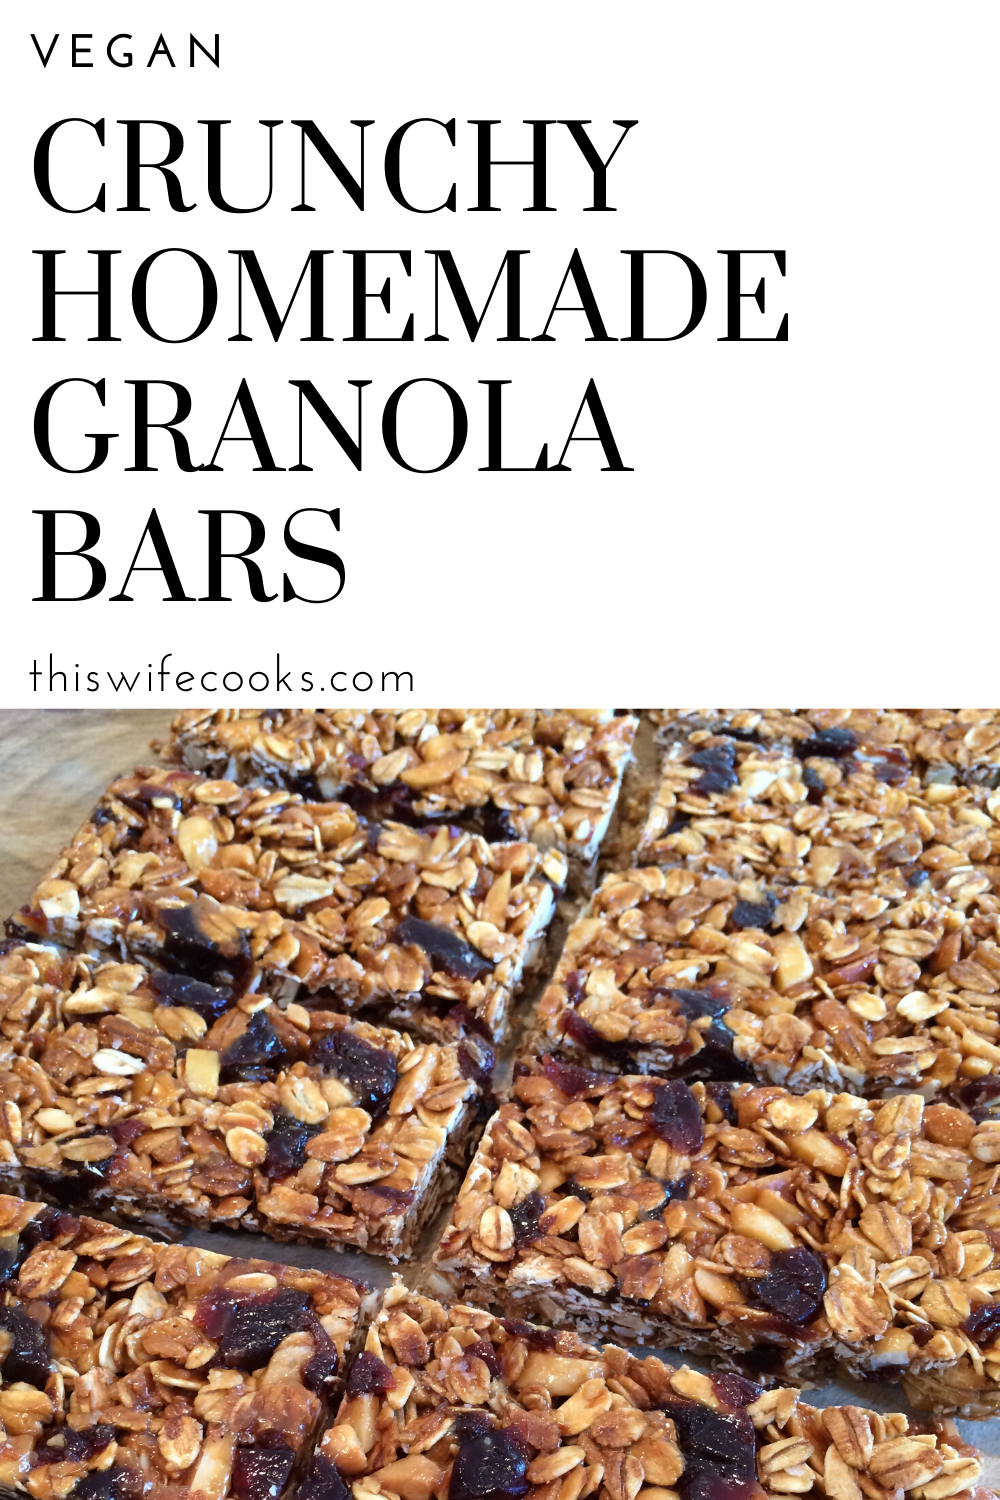 Crunchy Homemade Granola Bars - Easy, crunchy, 100% vegan granola bars perfect for the lunch box or after school snacking. via @thiswifecooks